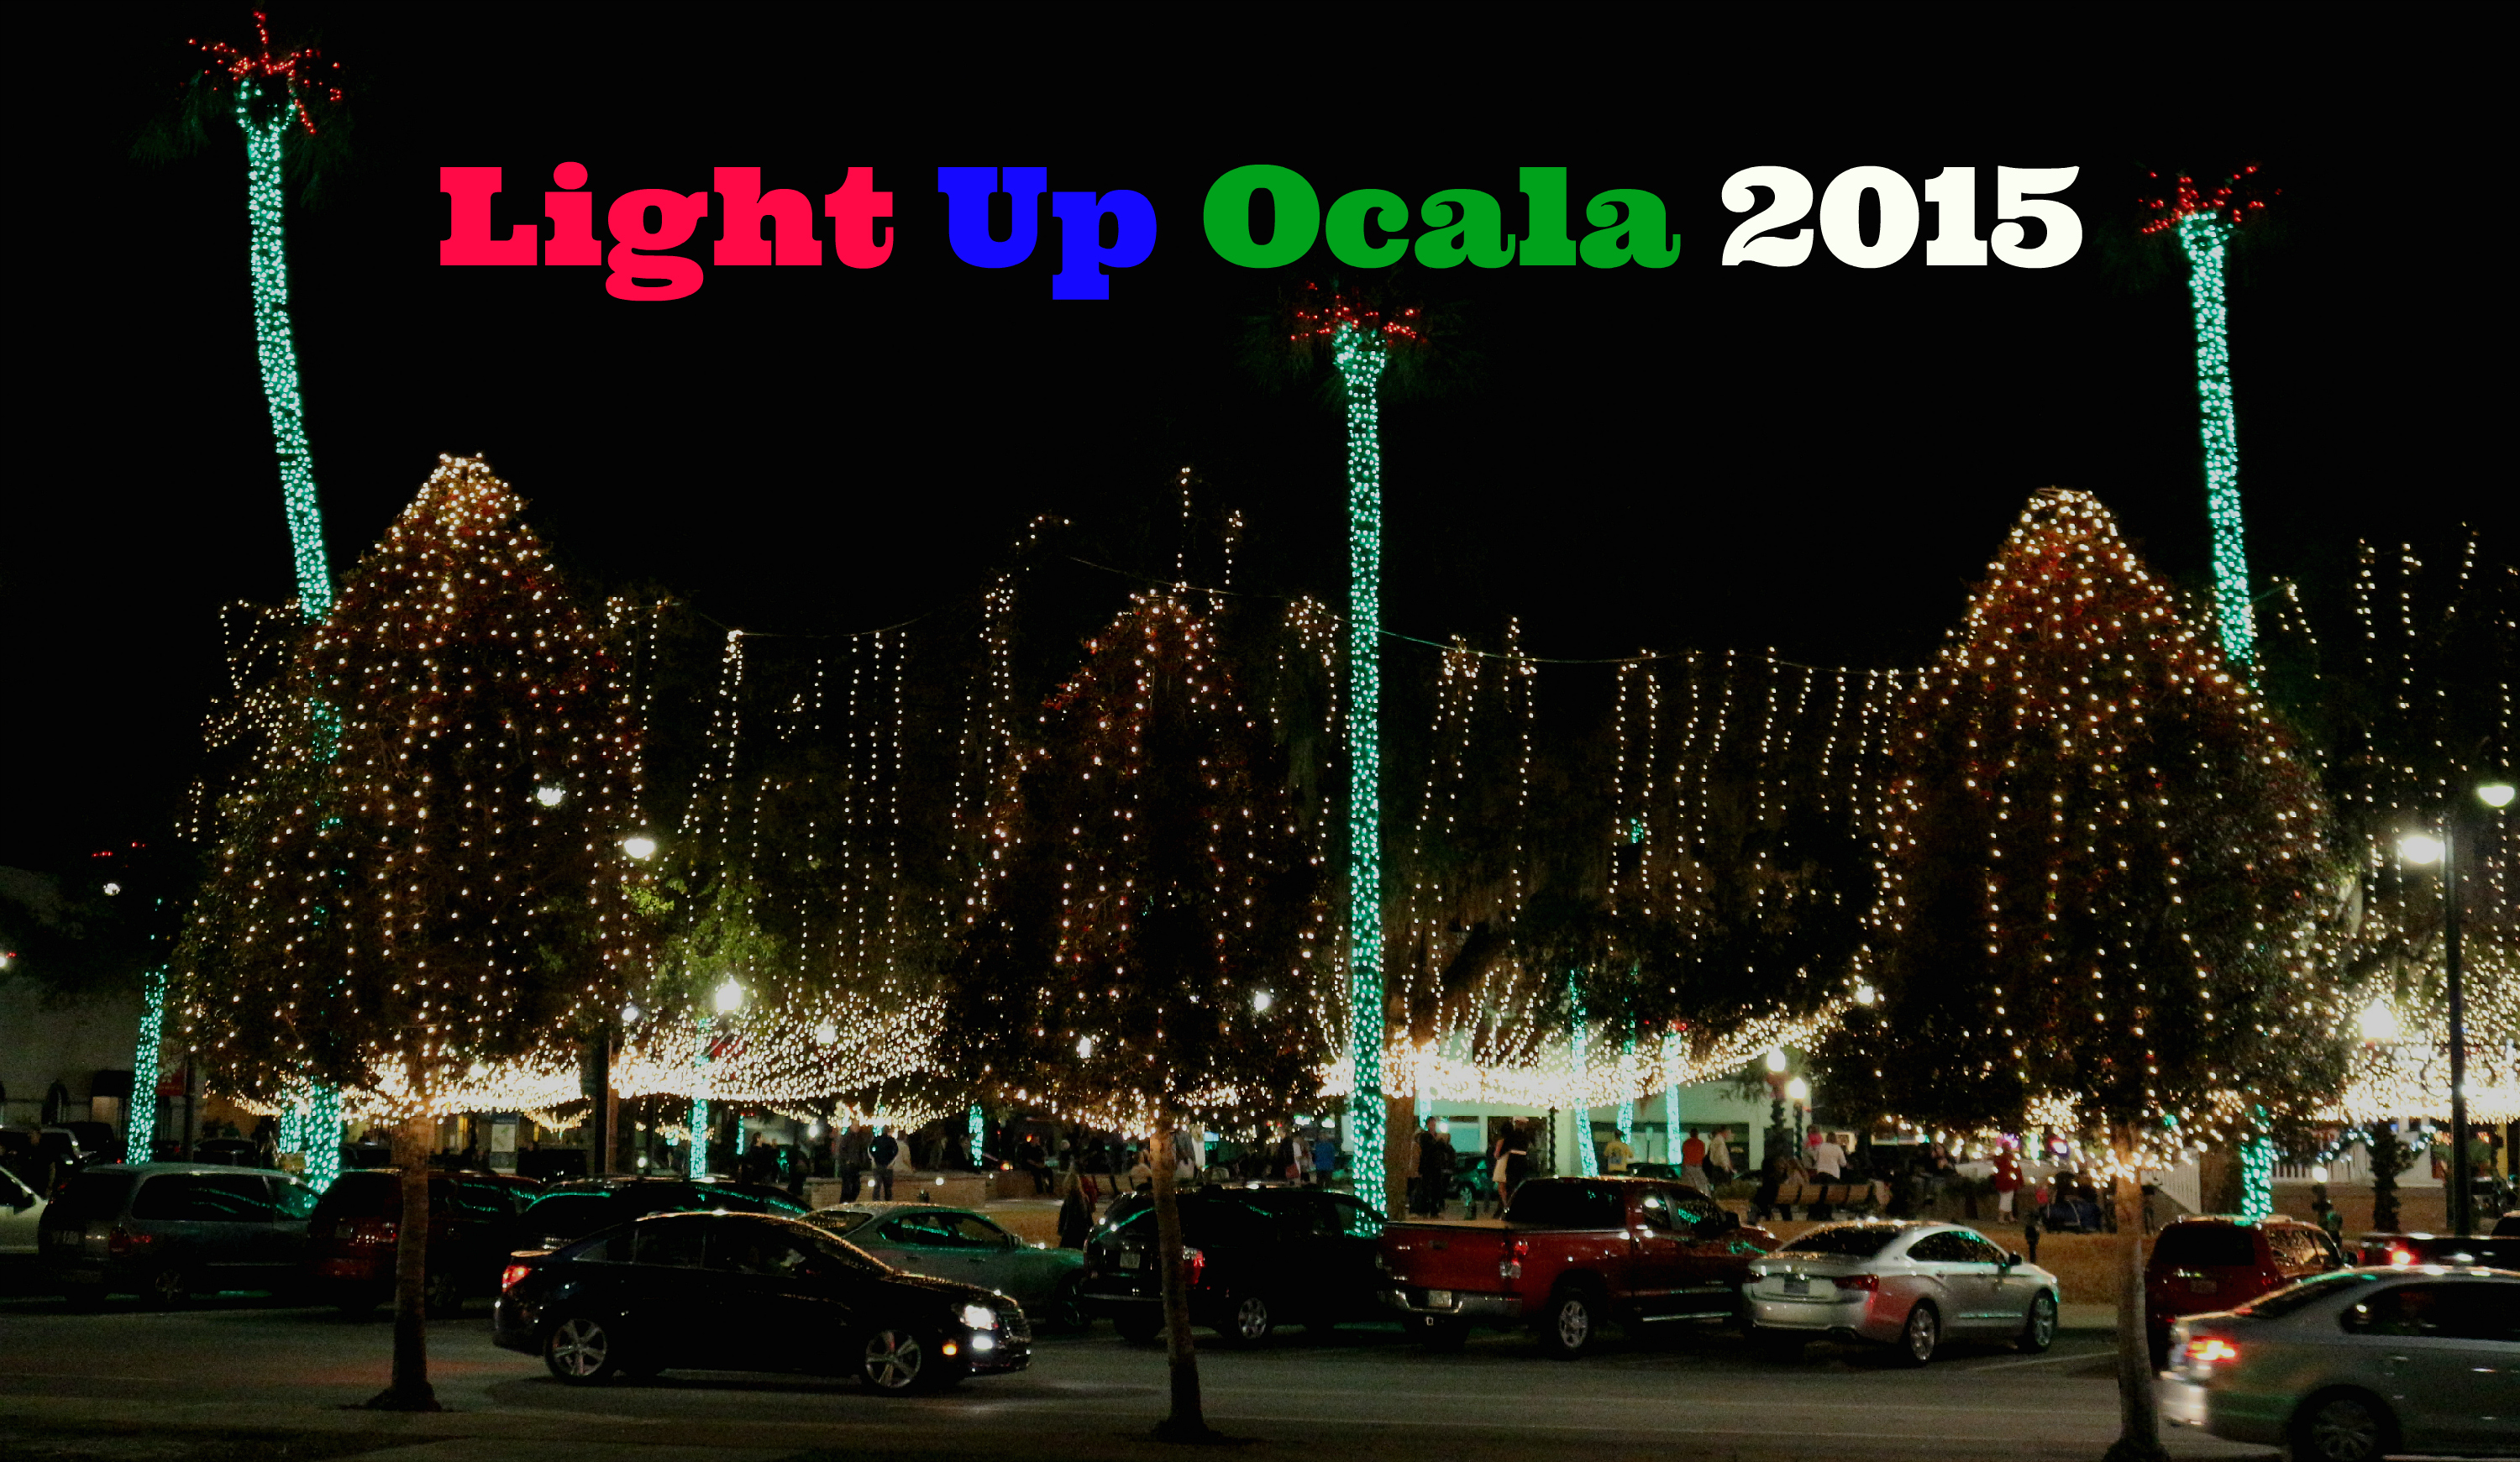 light up ocala November 2015